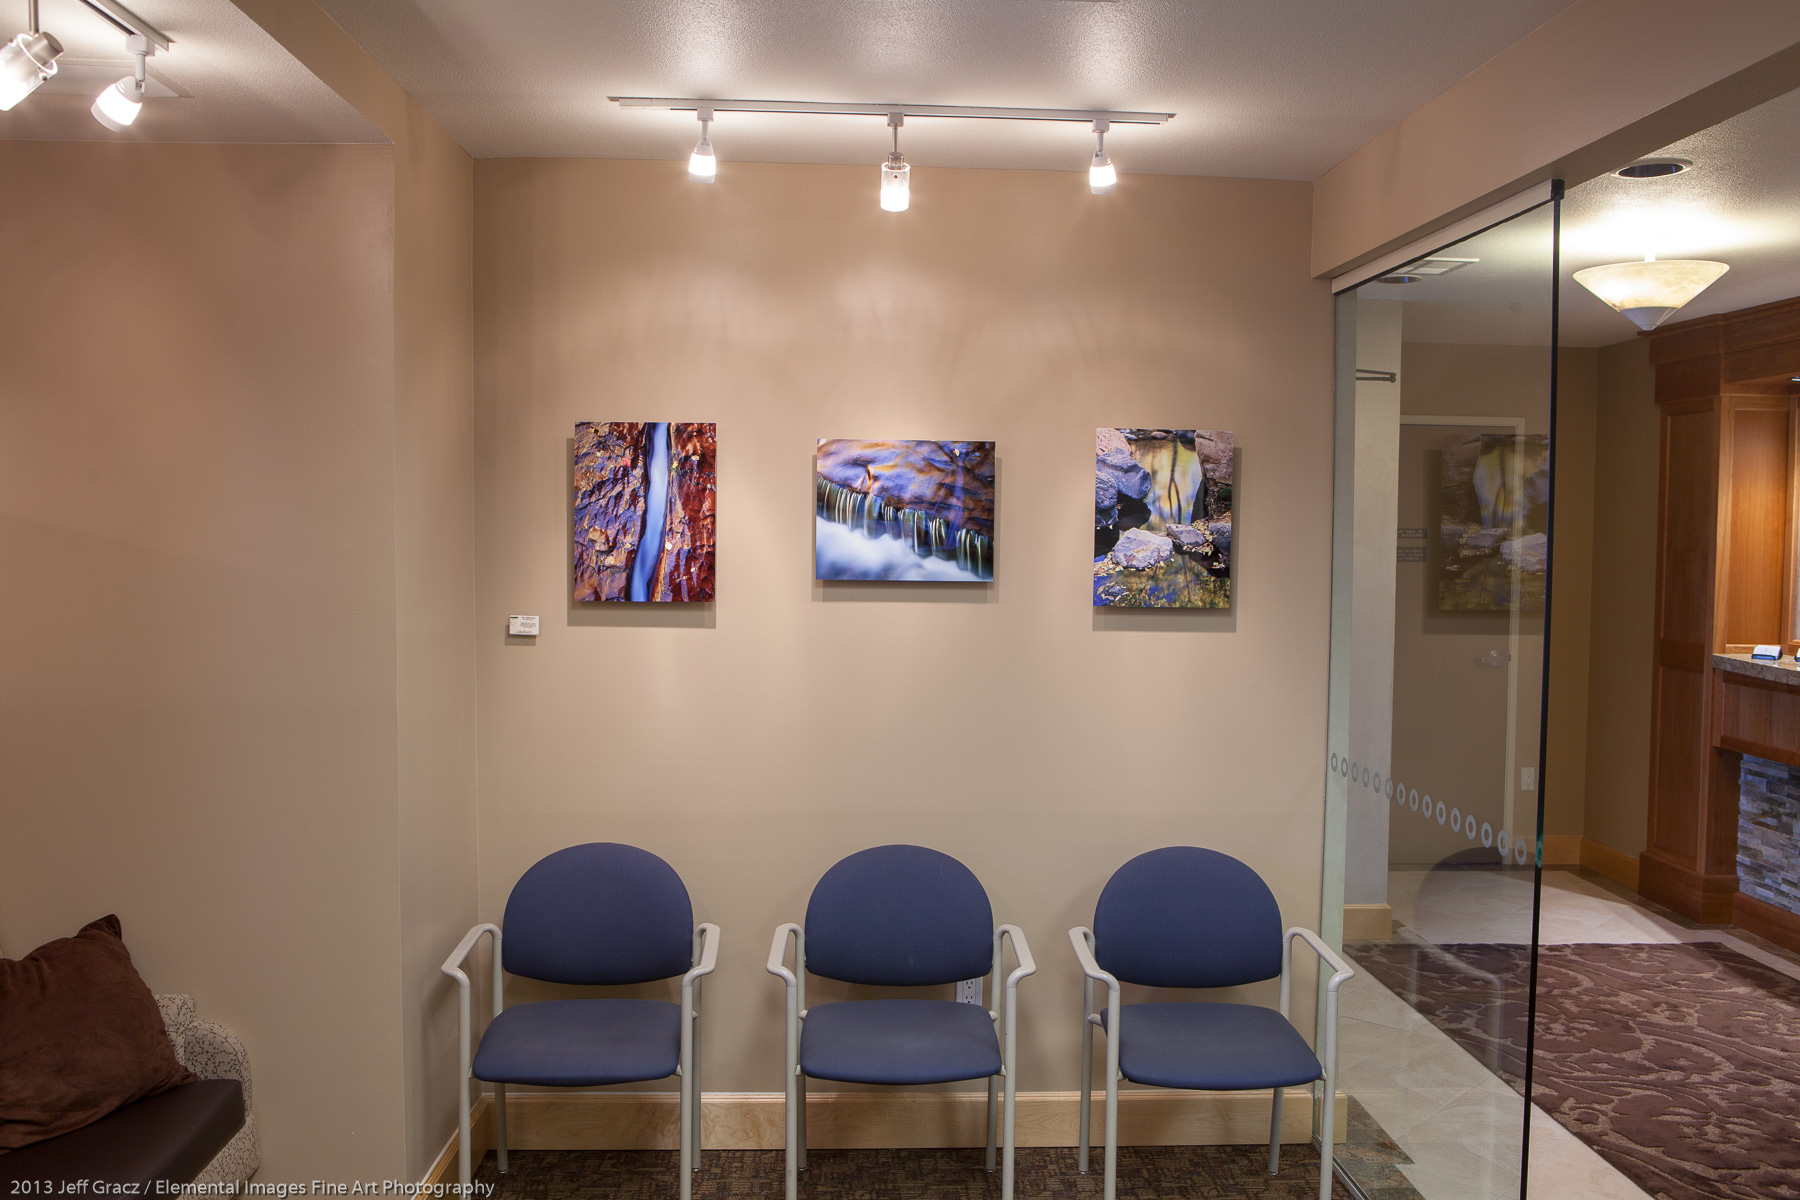 Doctor's office example | Portland | OR | USA - © 2013 Jeff Gracz / Elemental Images Fine Art Photography - All Rights Reserved Worldwide